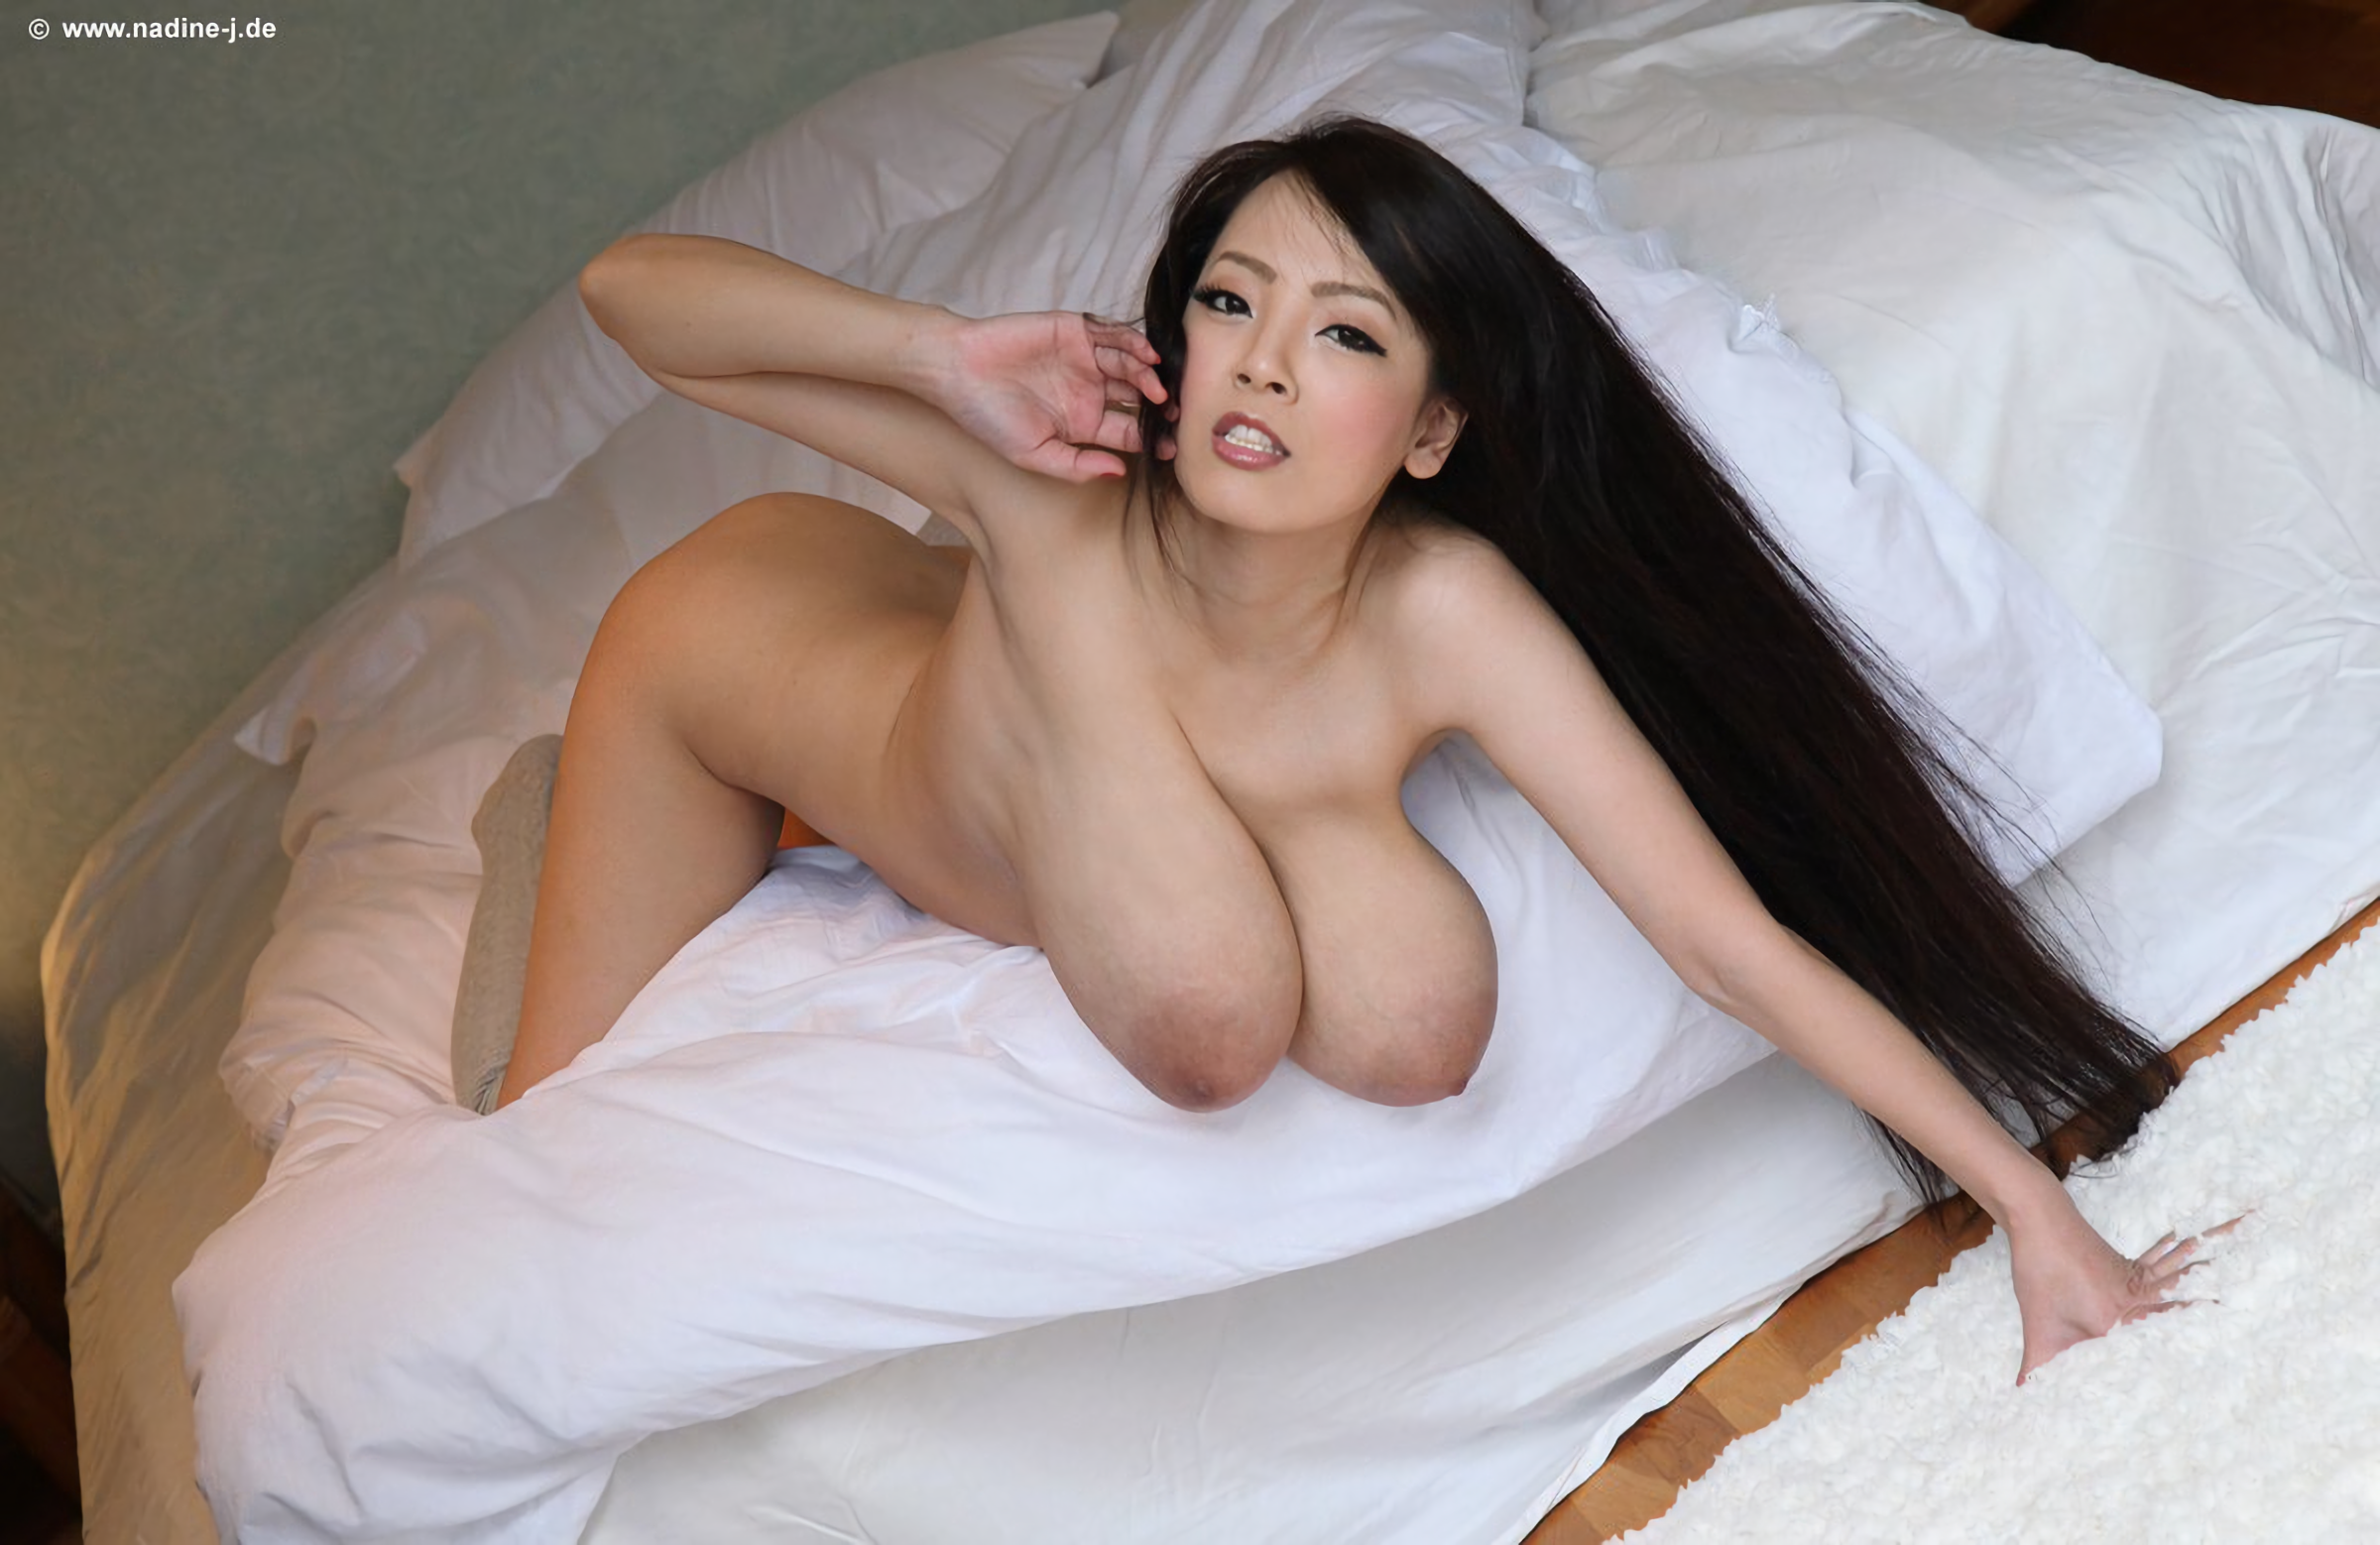 Hitomi Tanaka - Topless Asian Brunette Pornstar With -4865